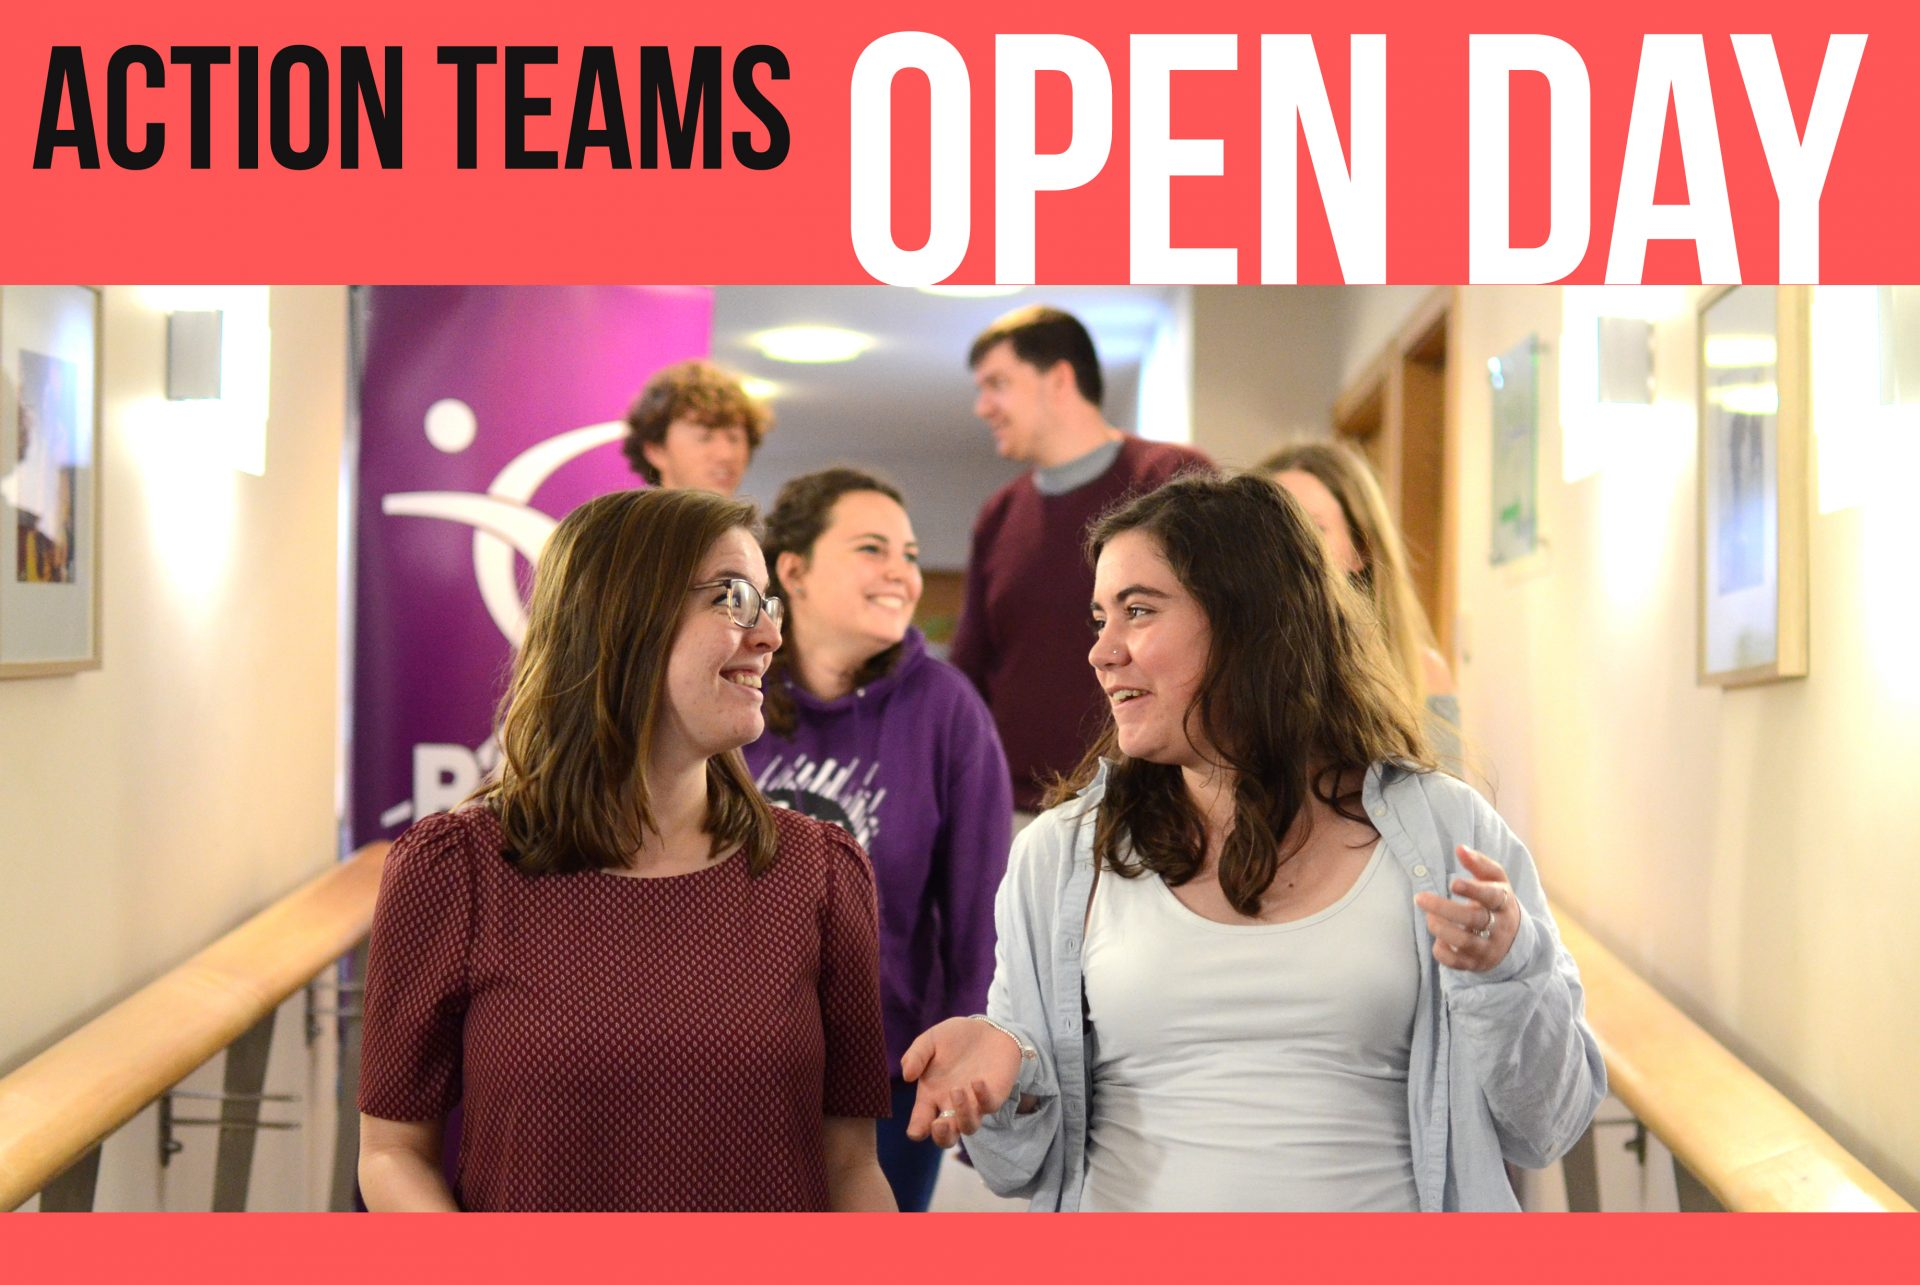 Open Day - Advert_0002_AT - Open Day - Image 3